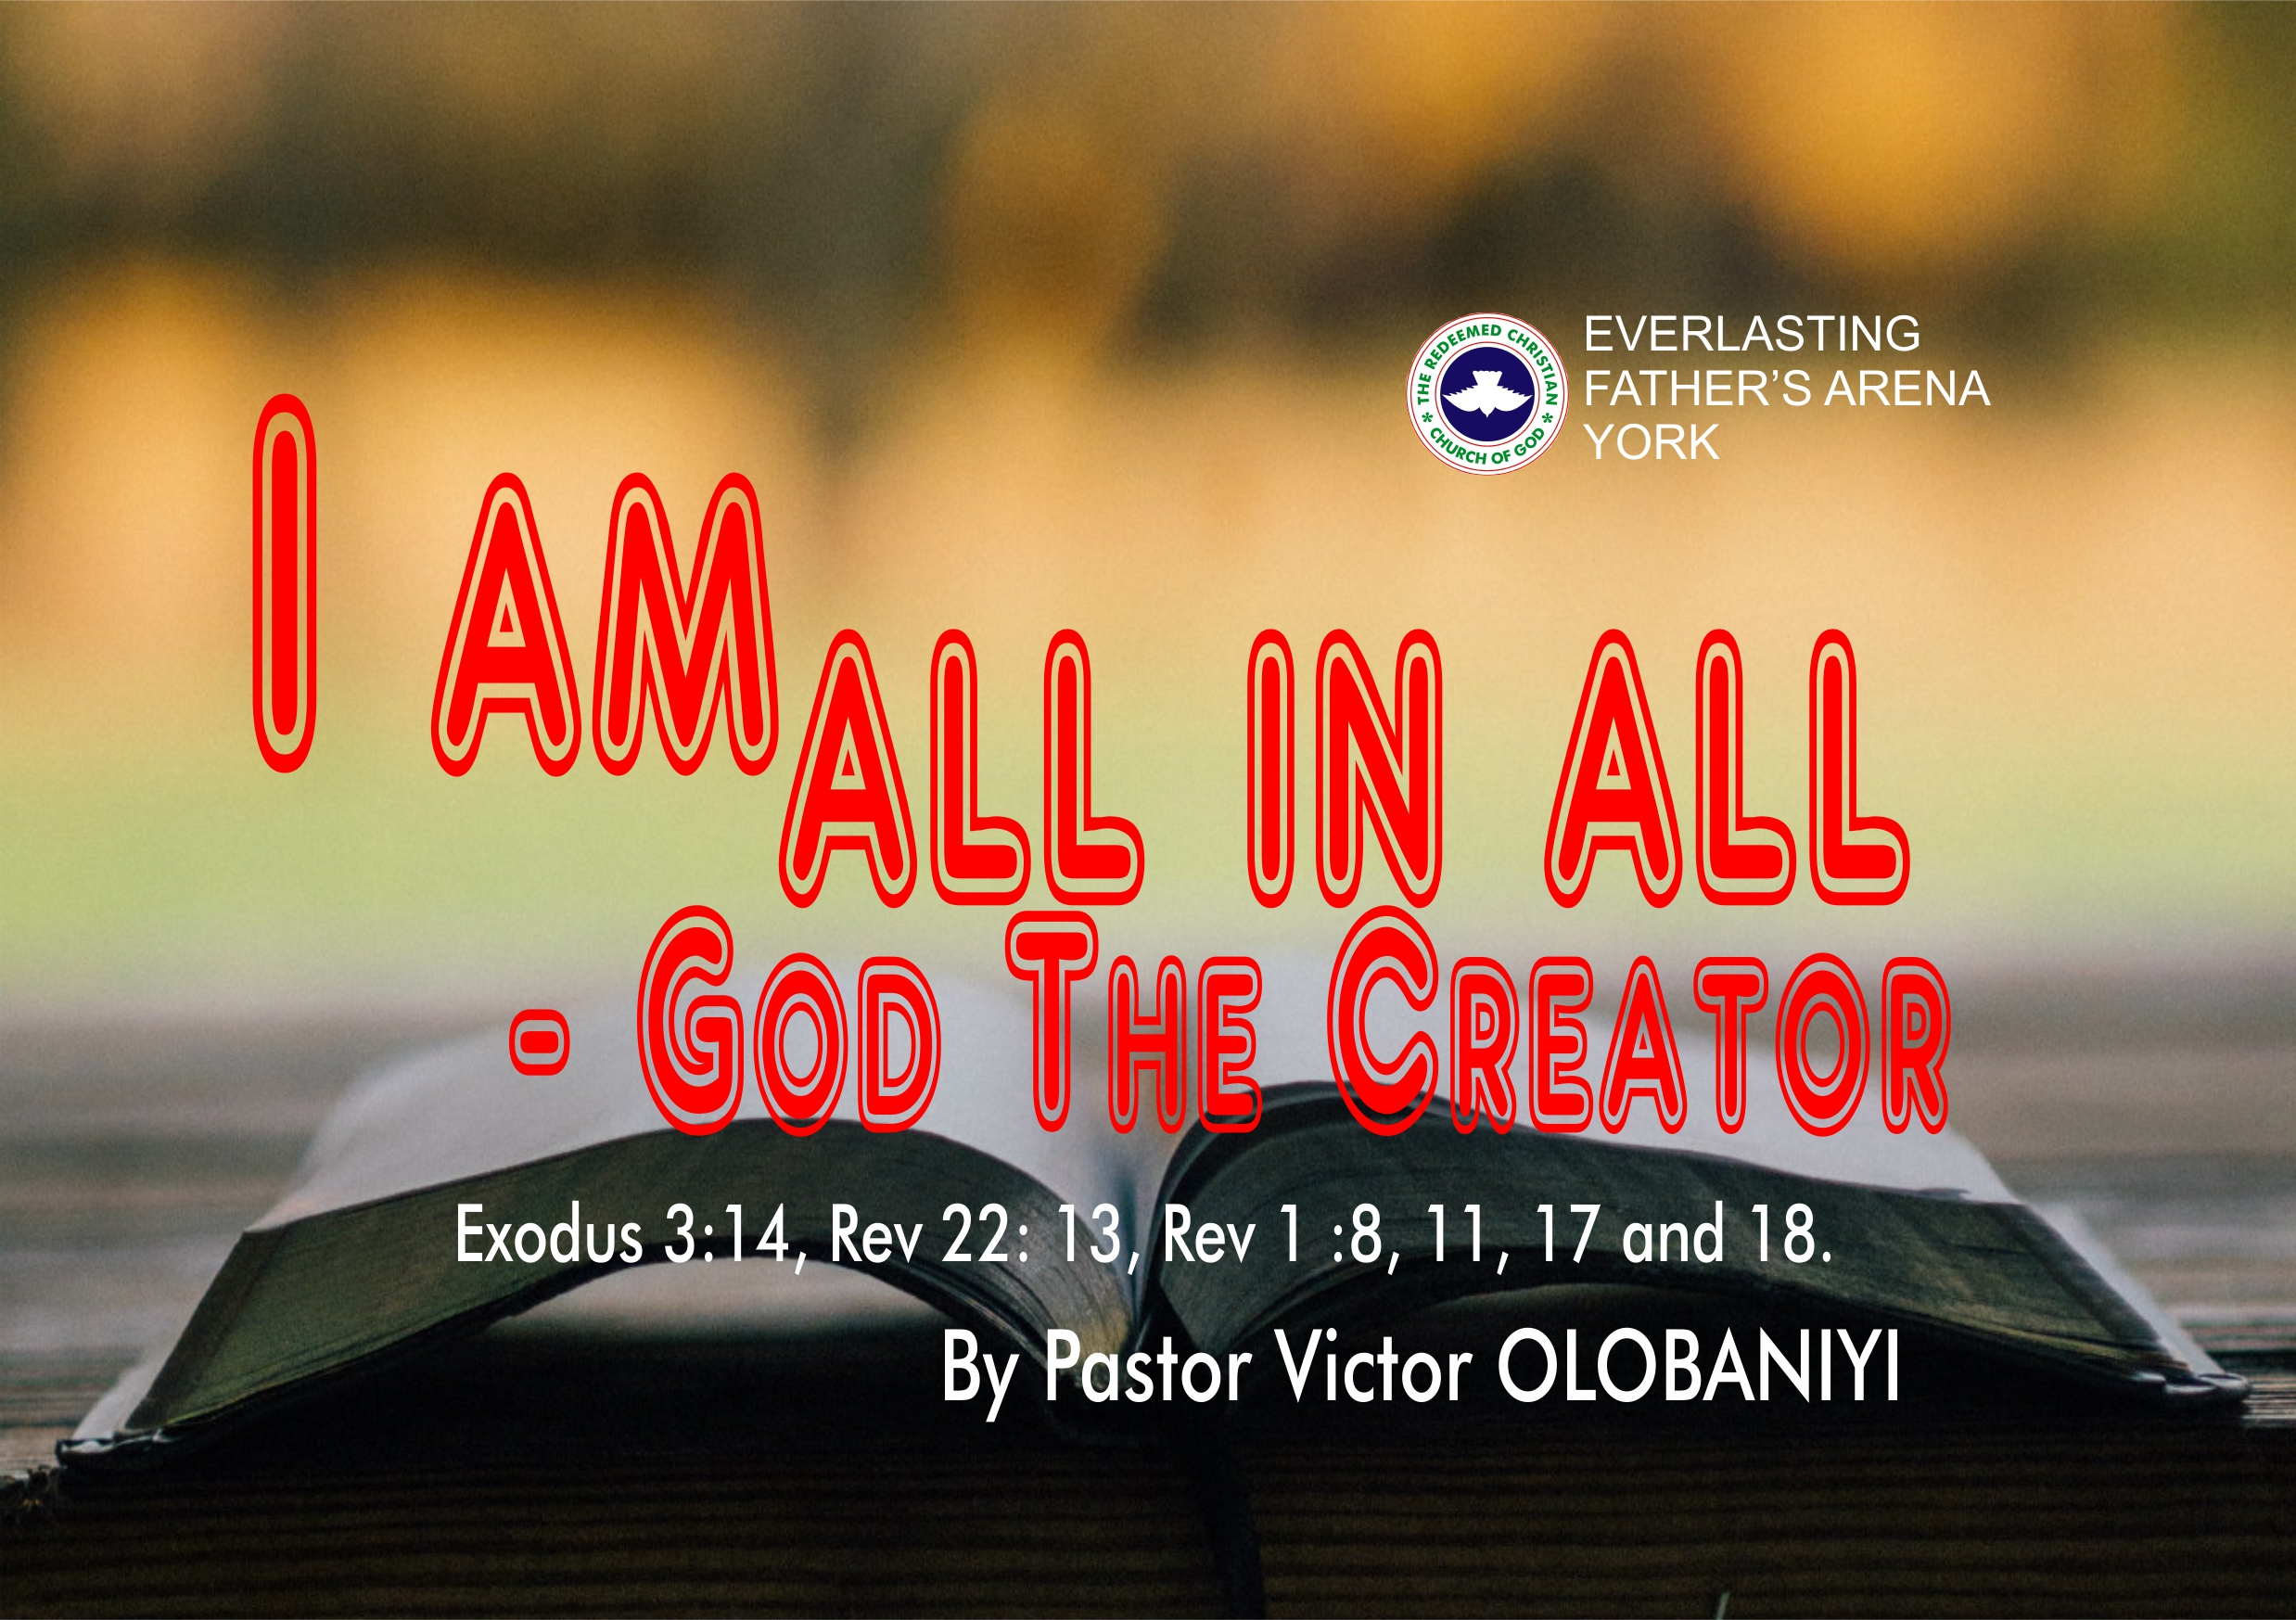 I Am All In All – God The Creator, by Pastor Victor Olobaniyi